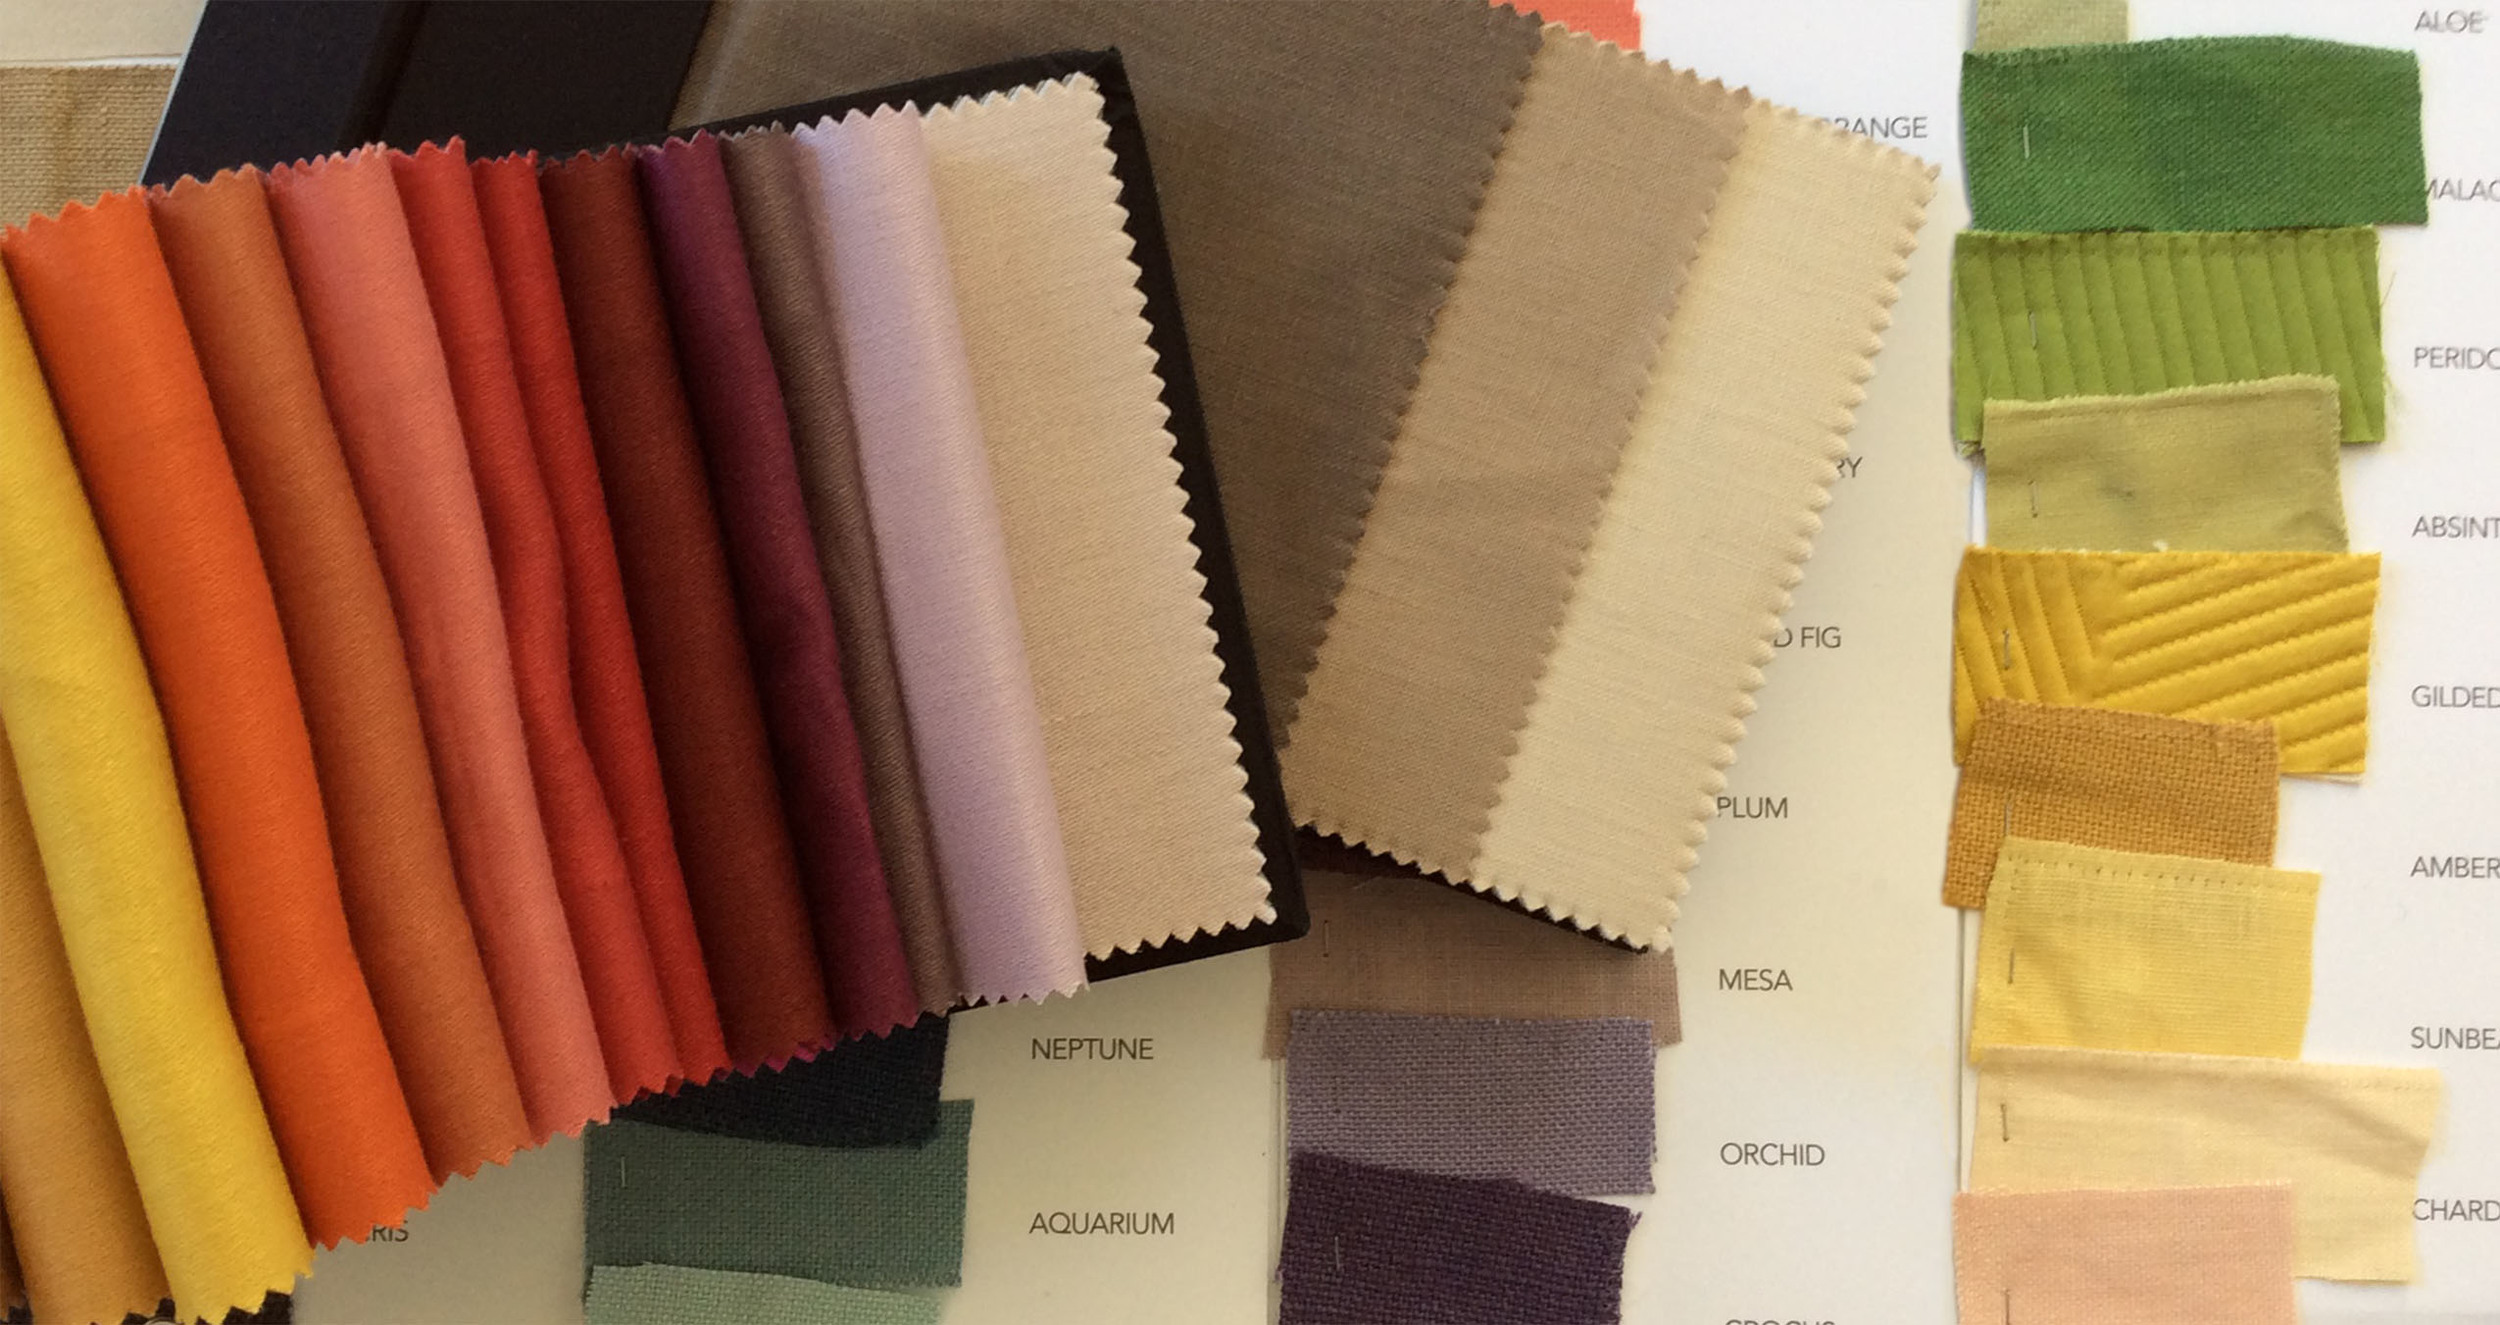 Mulberry Silks Ltd  - Two fifty-color ranges for linen plaincloths.